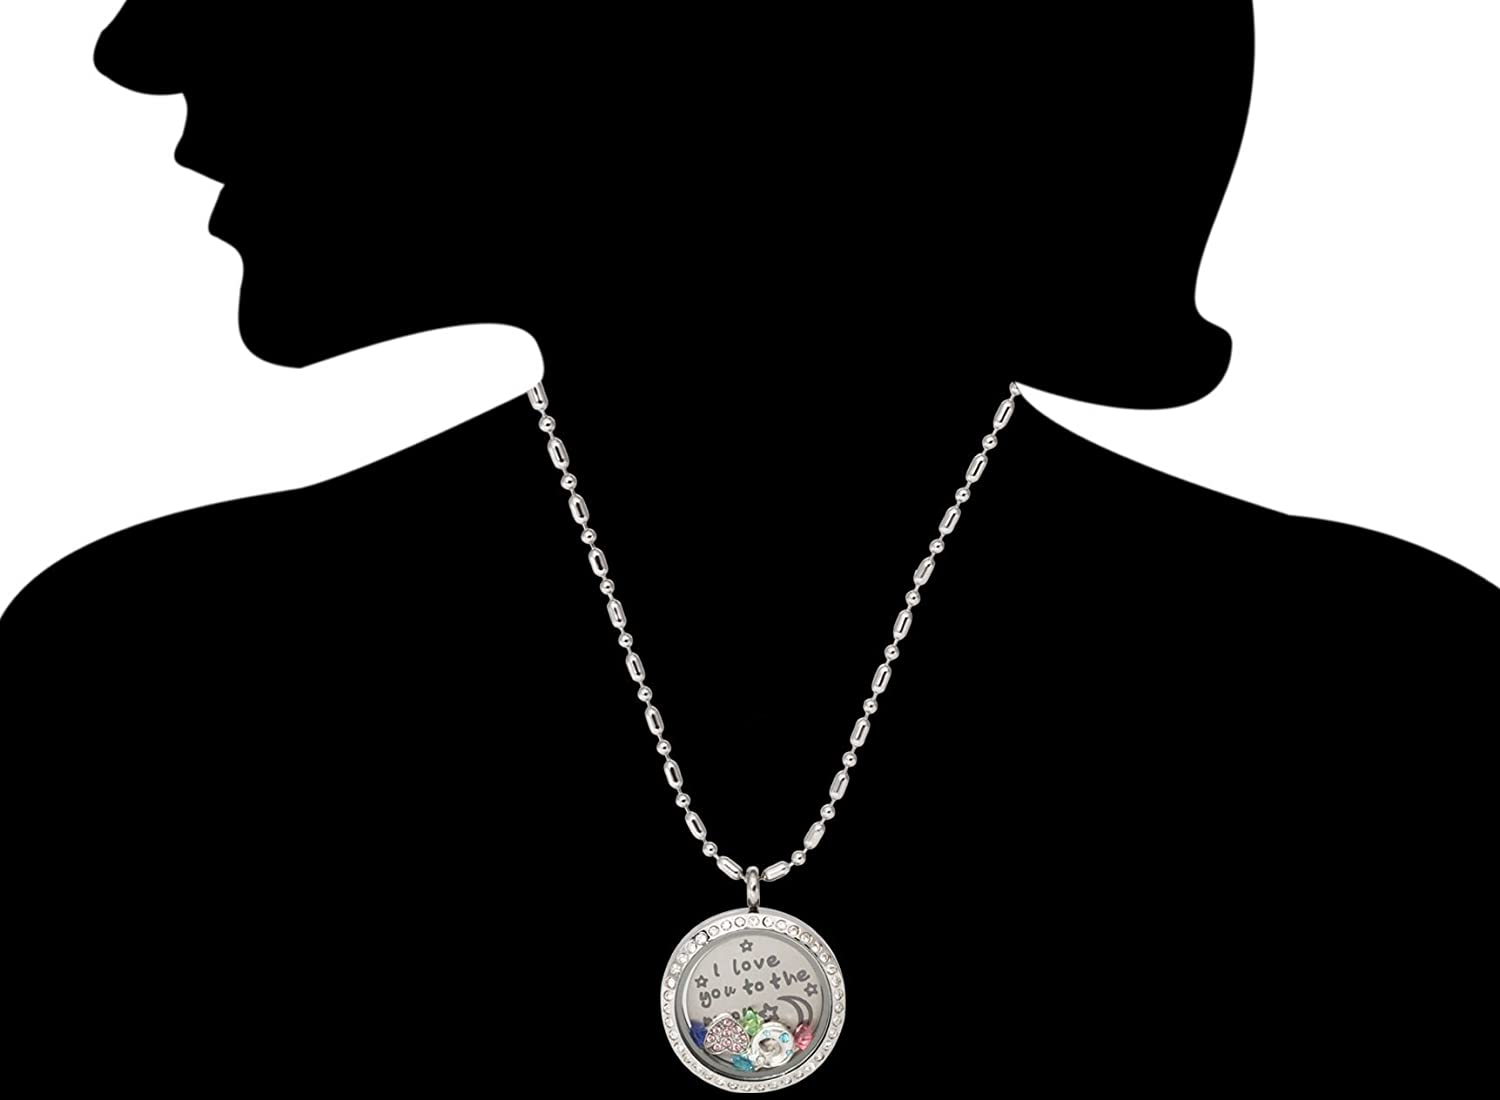 Matching Charms DR Memory Locket Pendant Necklace with Turnable and Movable Backplate with Inscription Colorful Birthstones